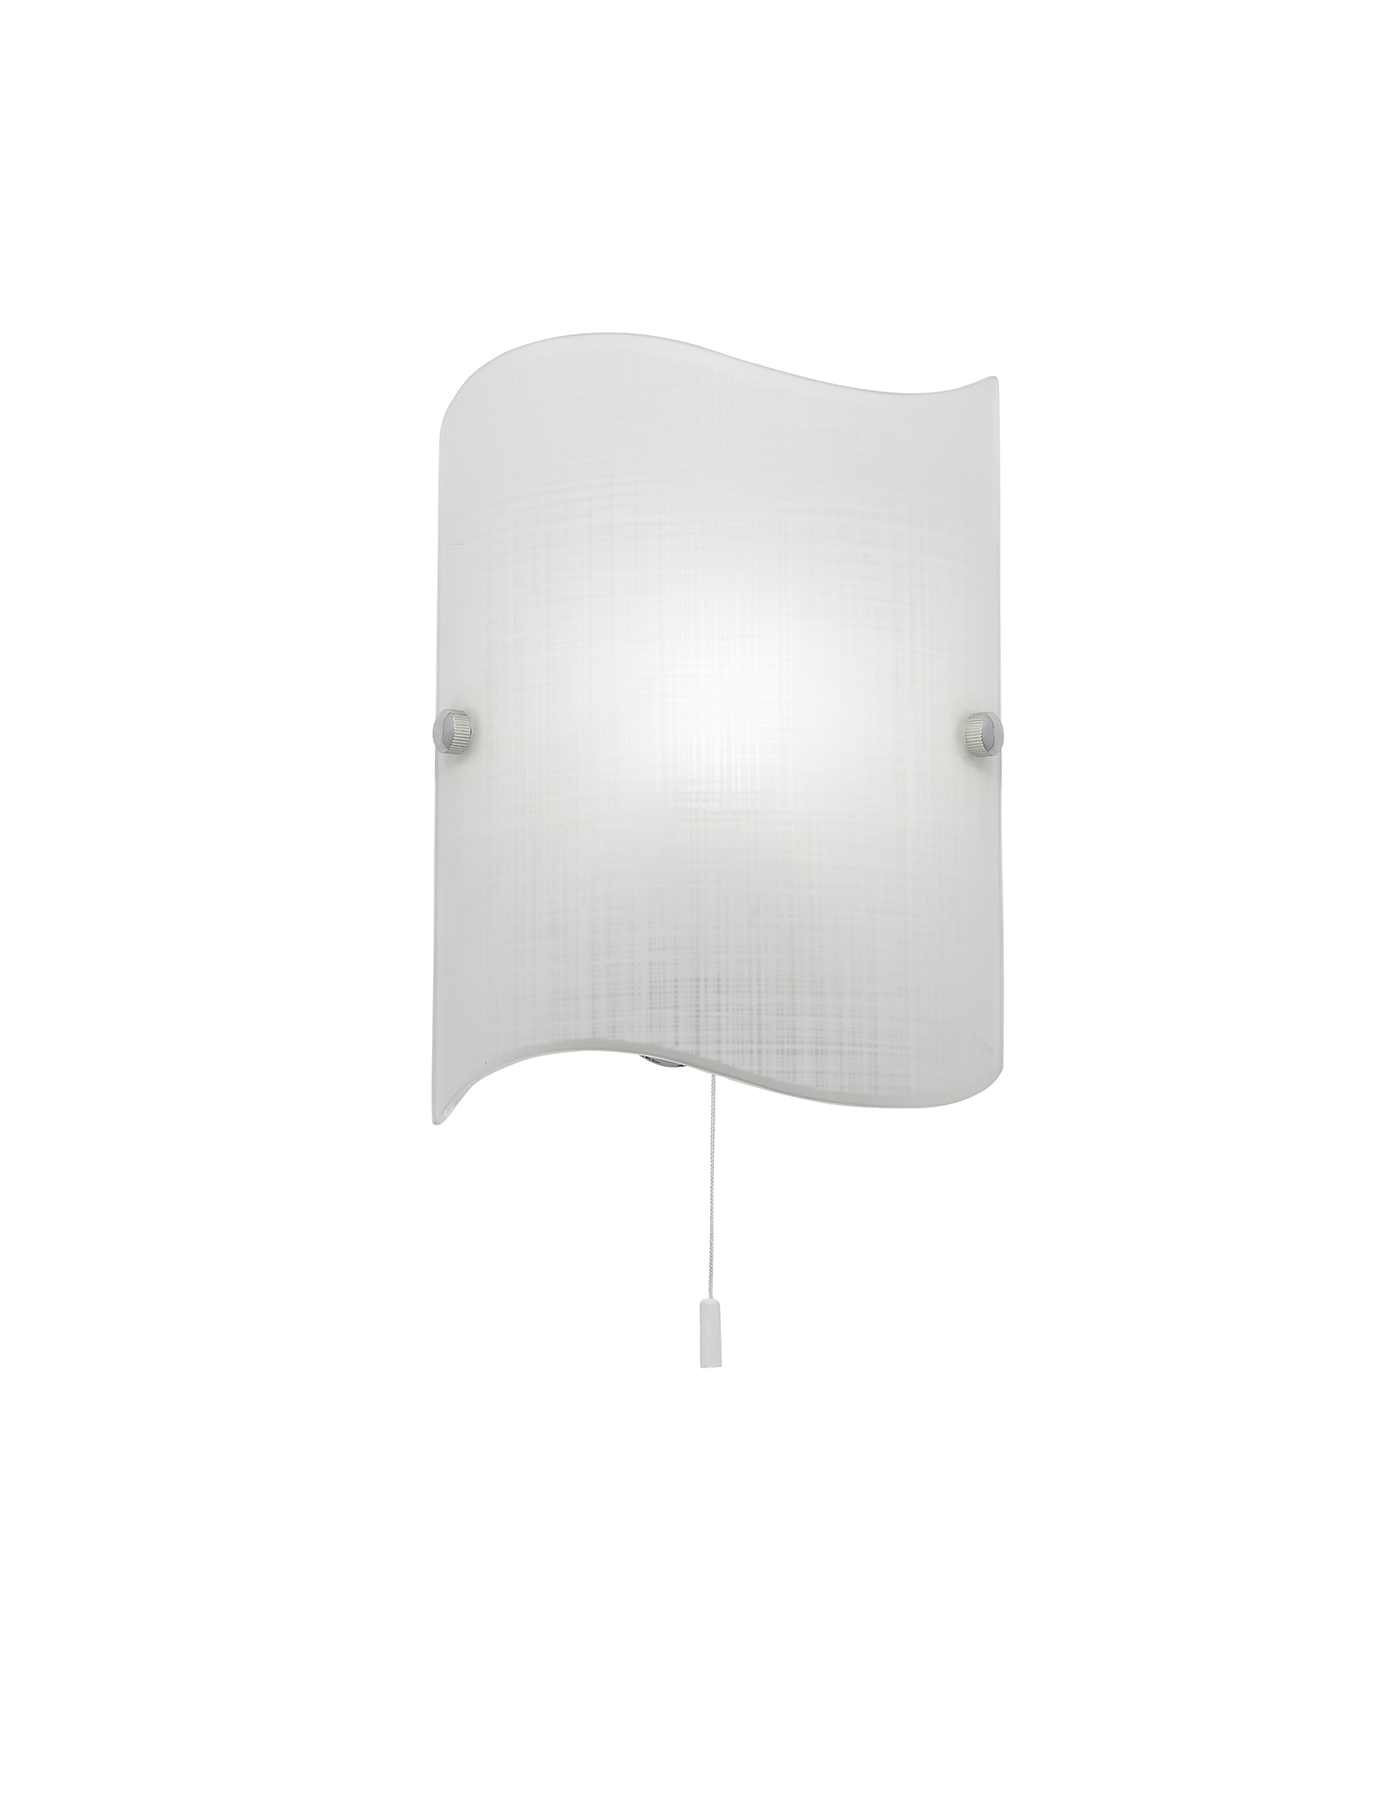 Endon Wave 1lt wall light 60W Matt patterned white glass & chrome effect plate Thumbnail 1